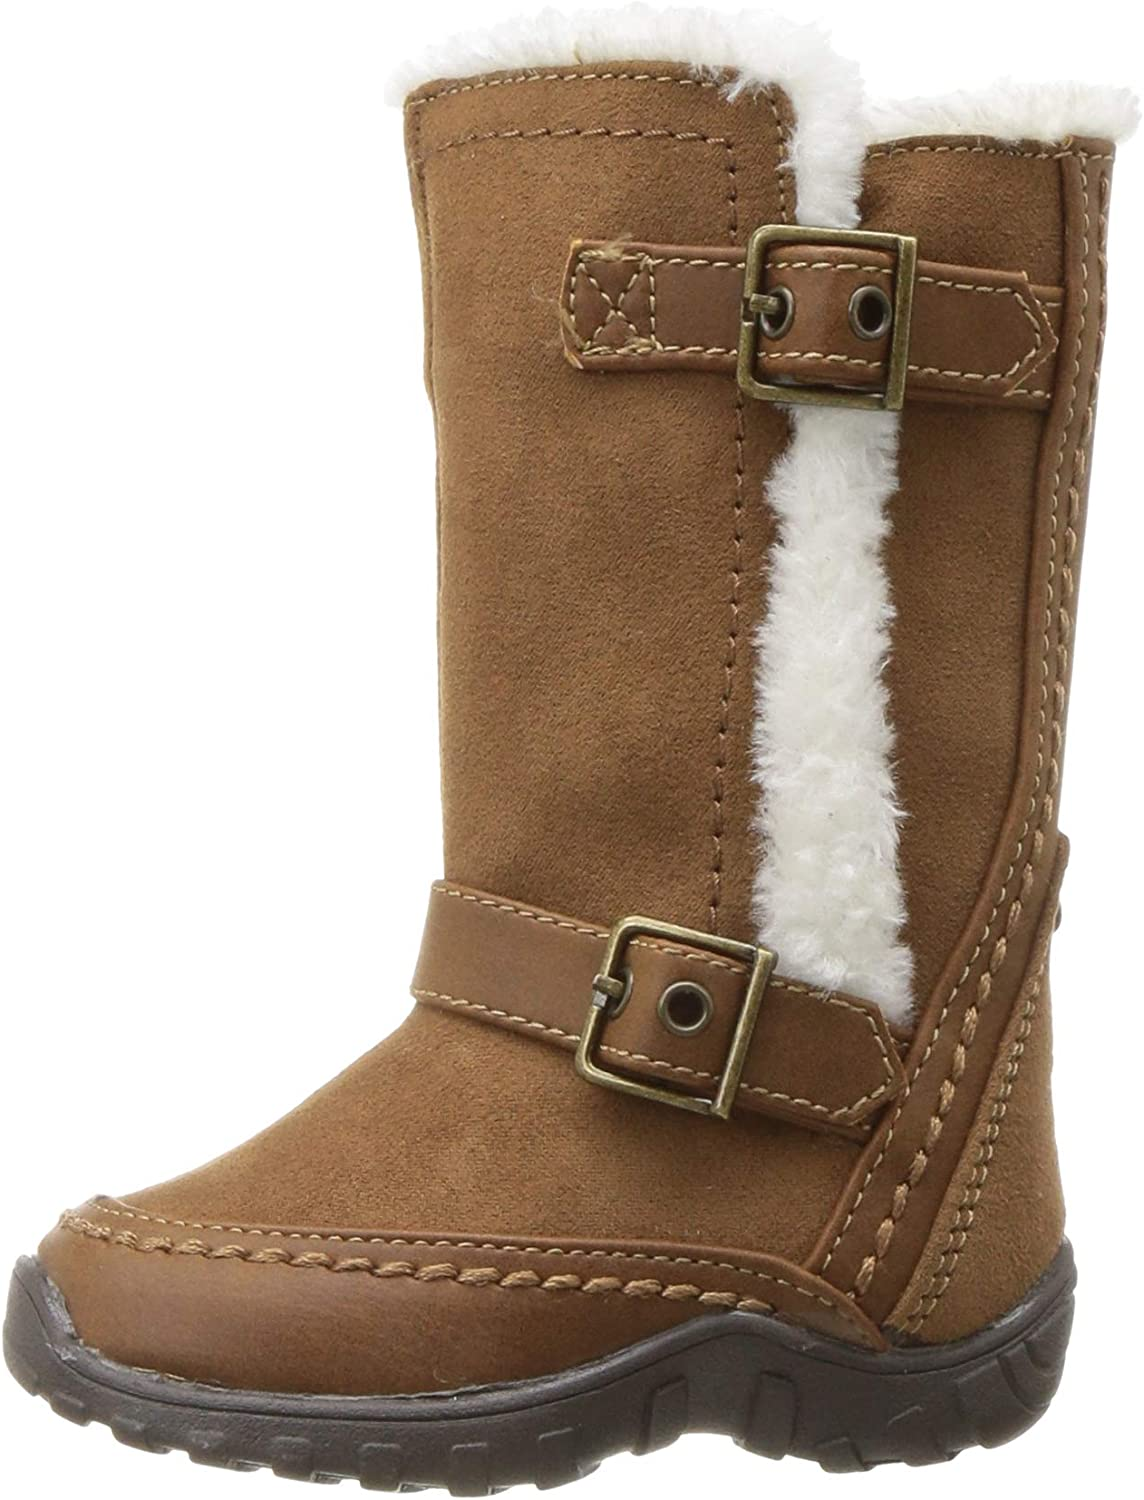 Beige nn Lovely Zipper Faux Fur Toddlers Kids Girls Winter Boots Shoes Size 3